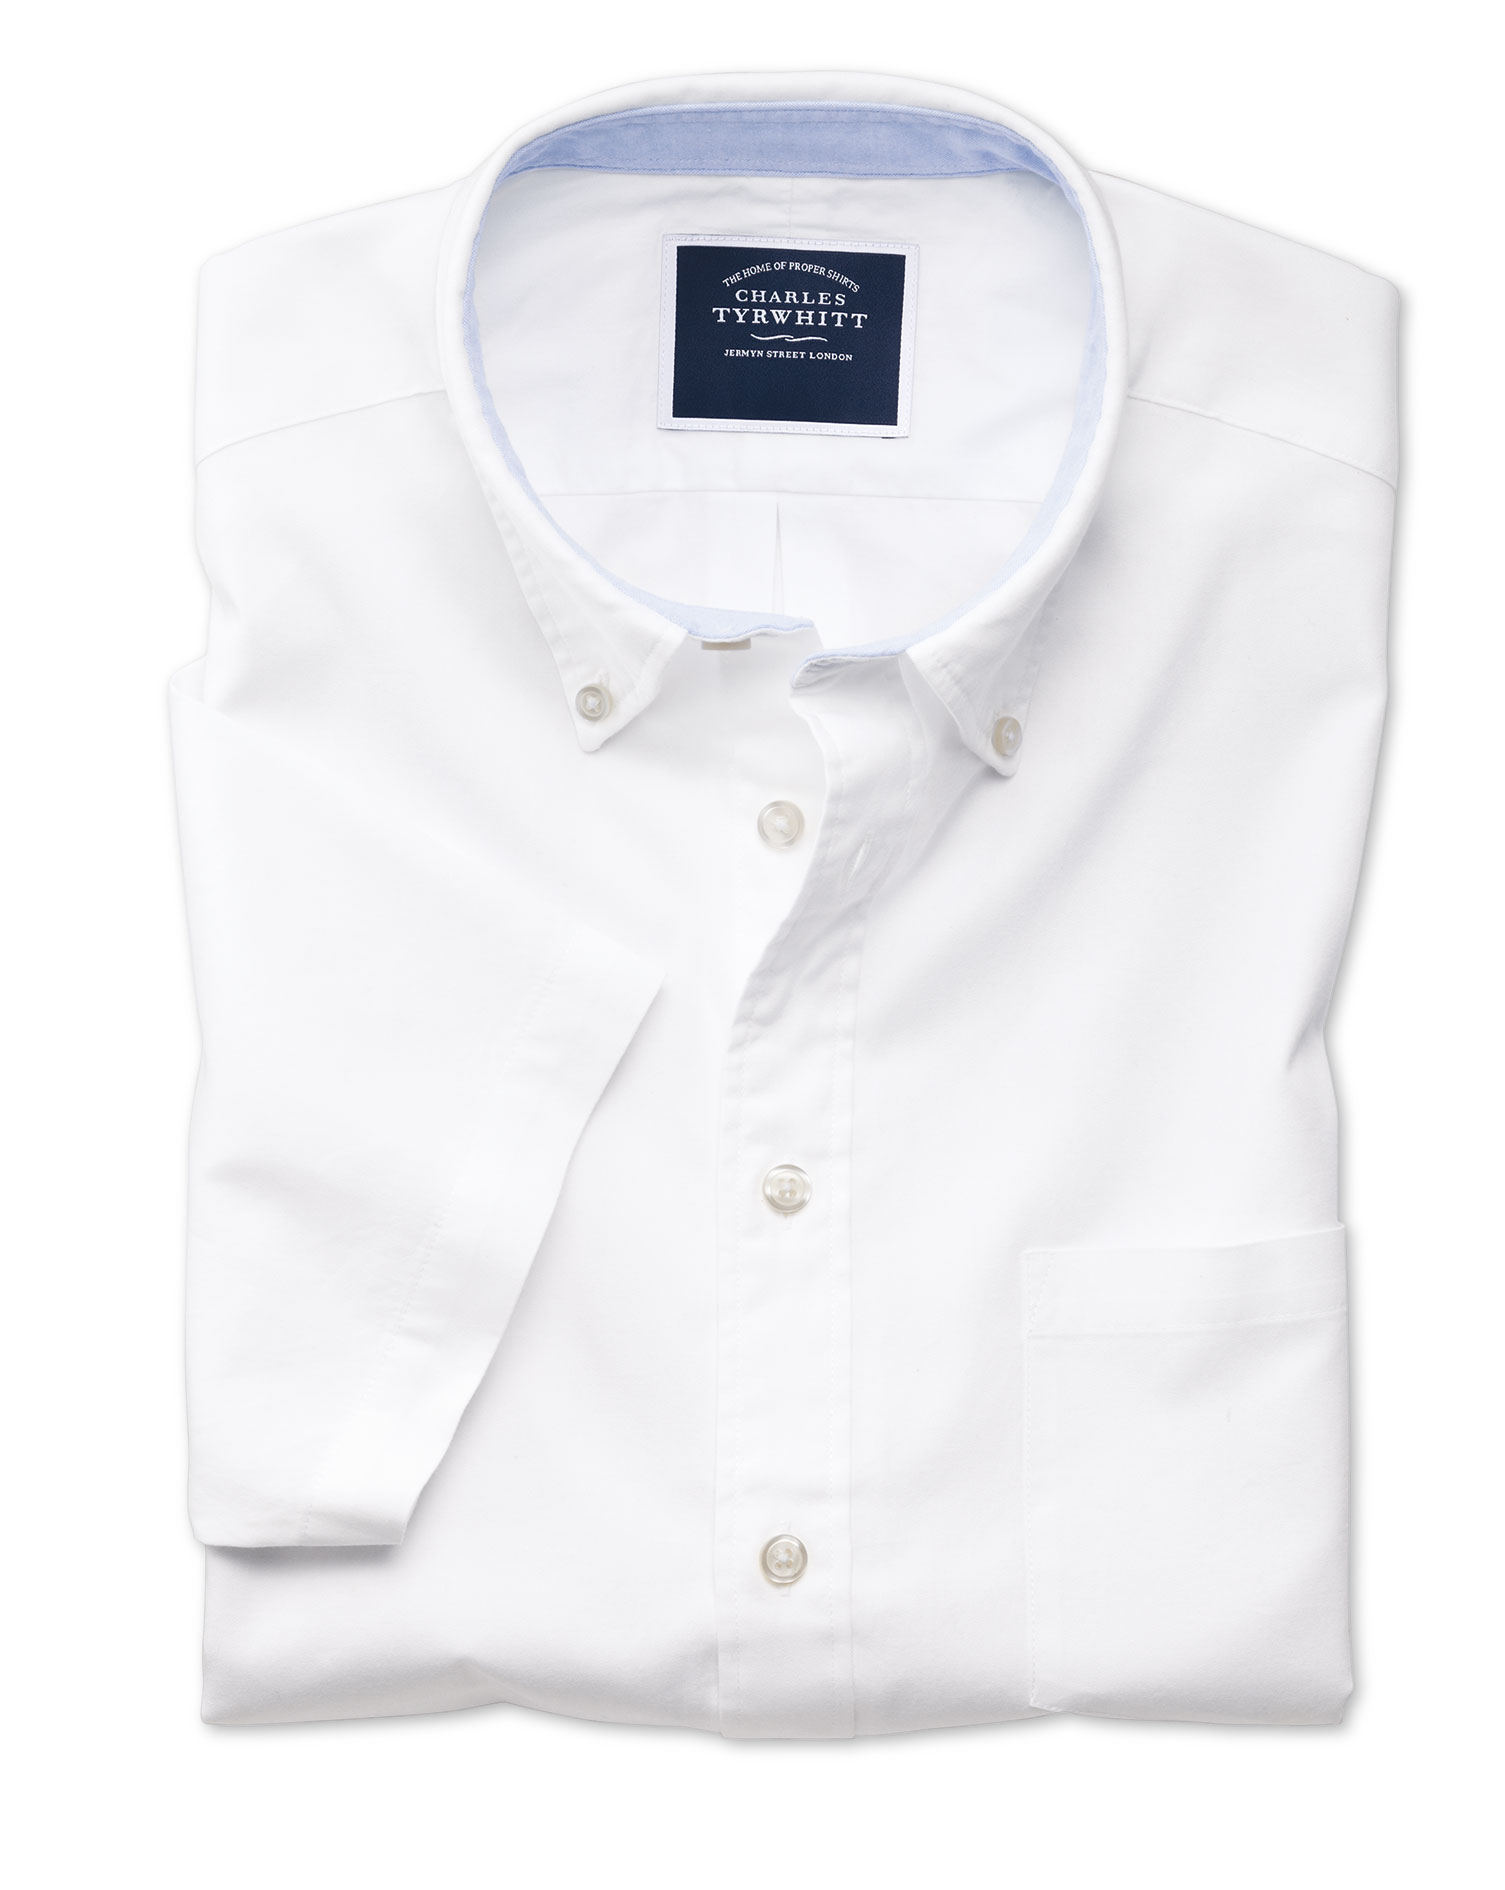 Slim Fit Button-Down Washed Oxford Short Sleeve White Cotton Shirt Single Cuff Size XS by Charles Ty